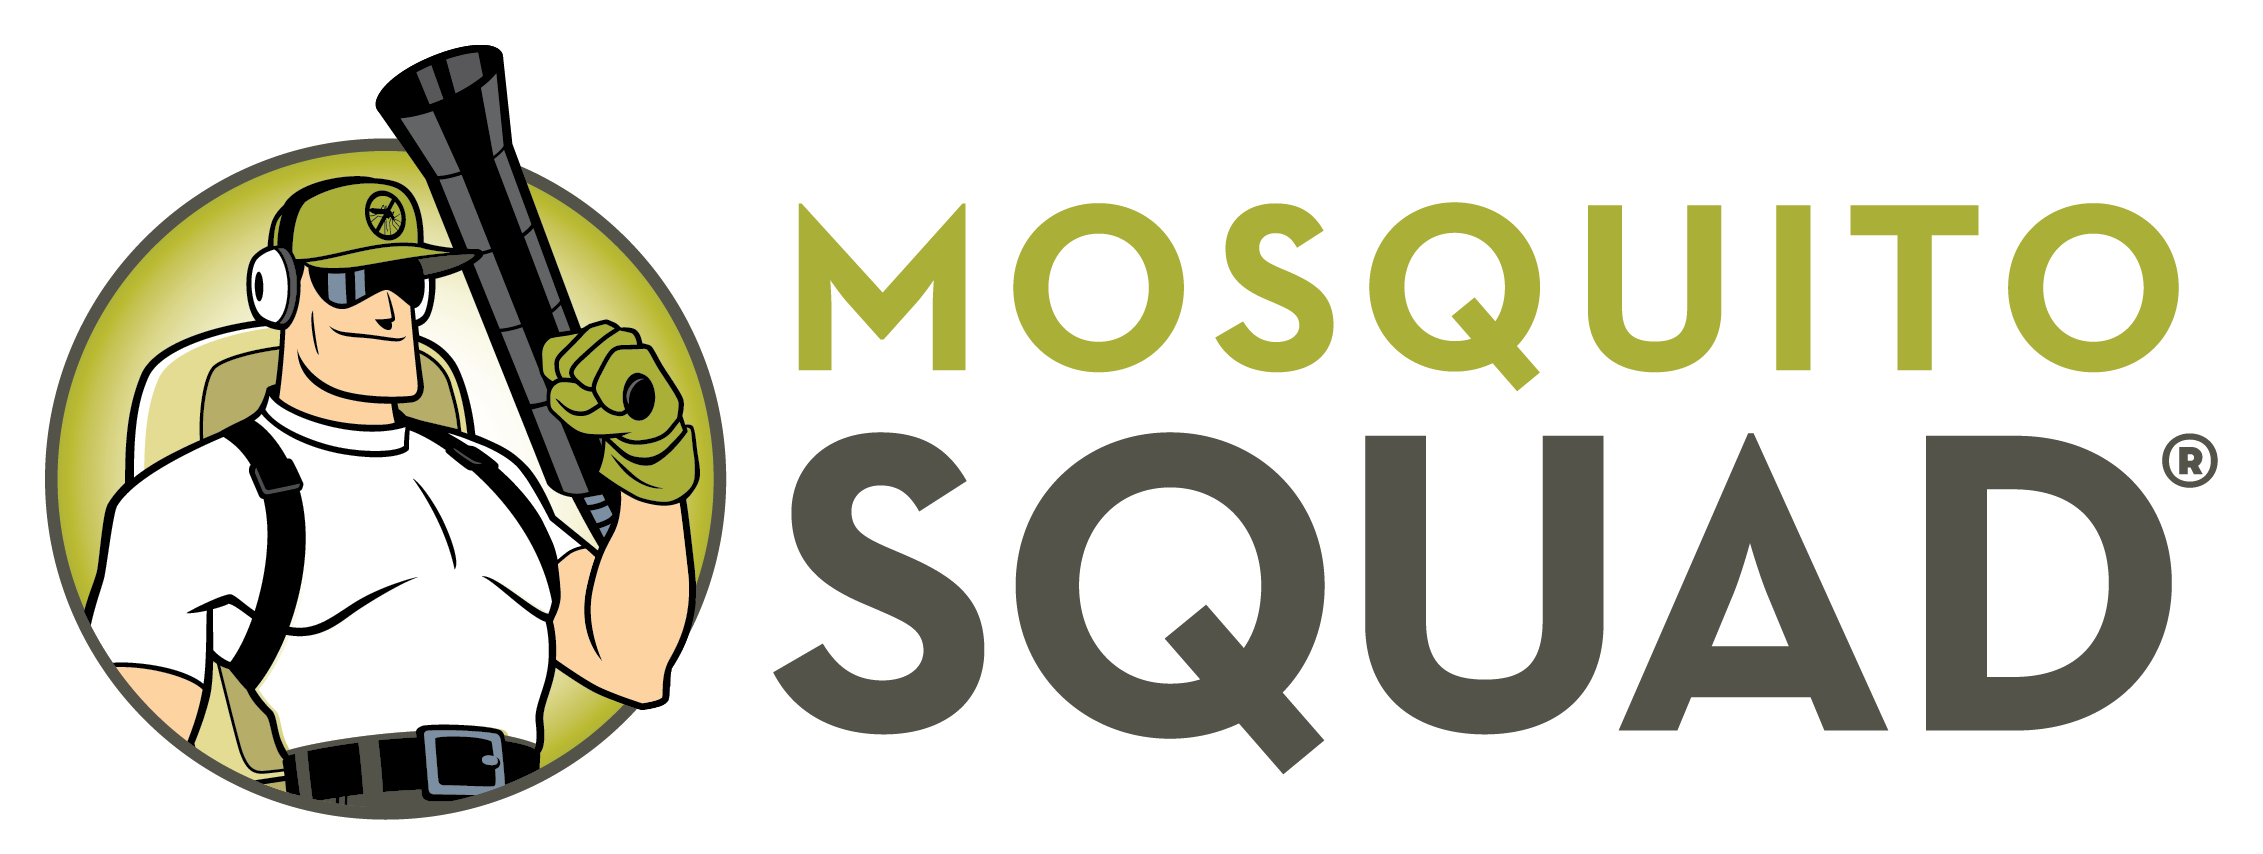 Mosquito squad of the. Stress clipart taut